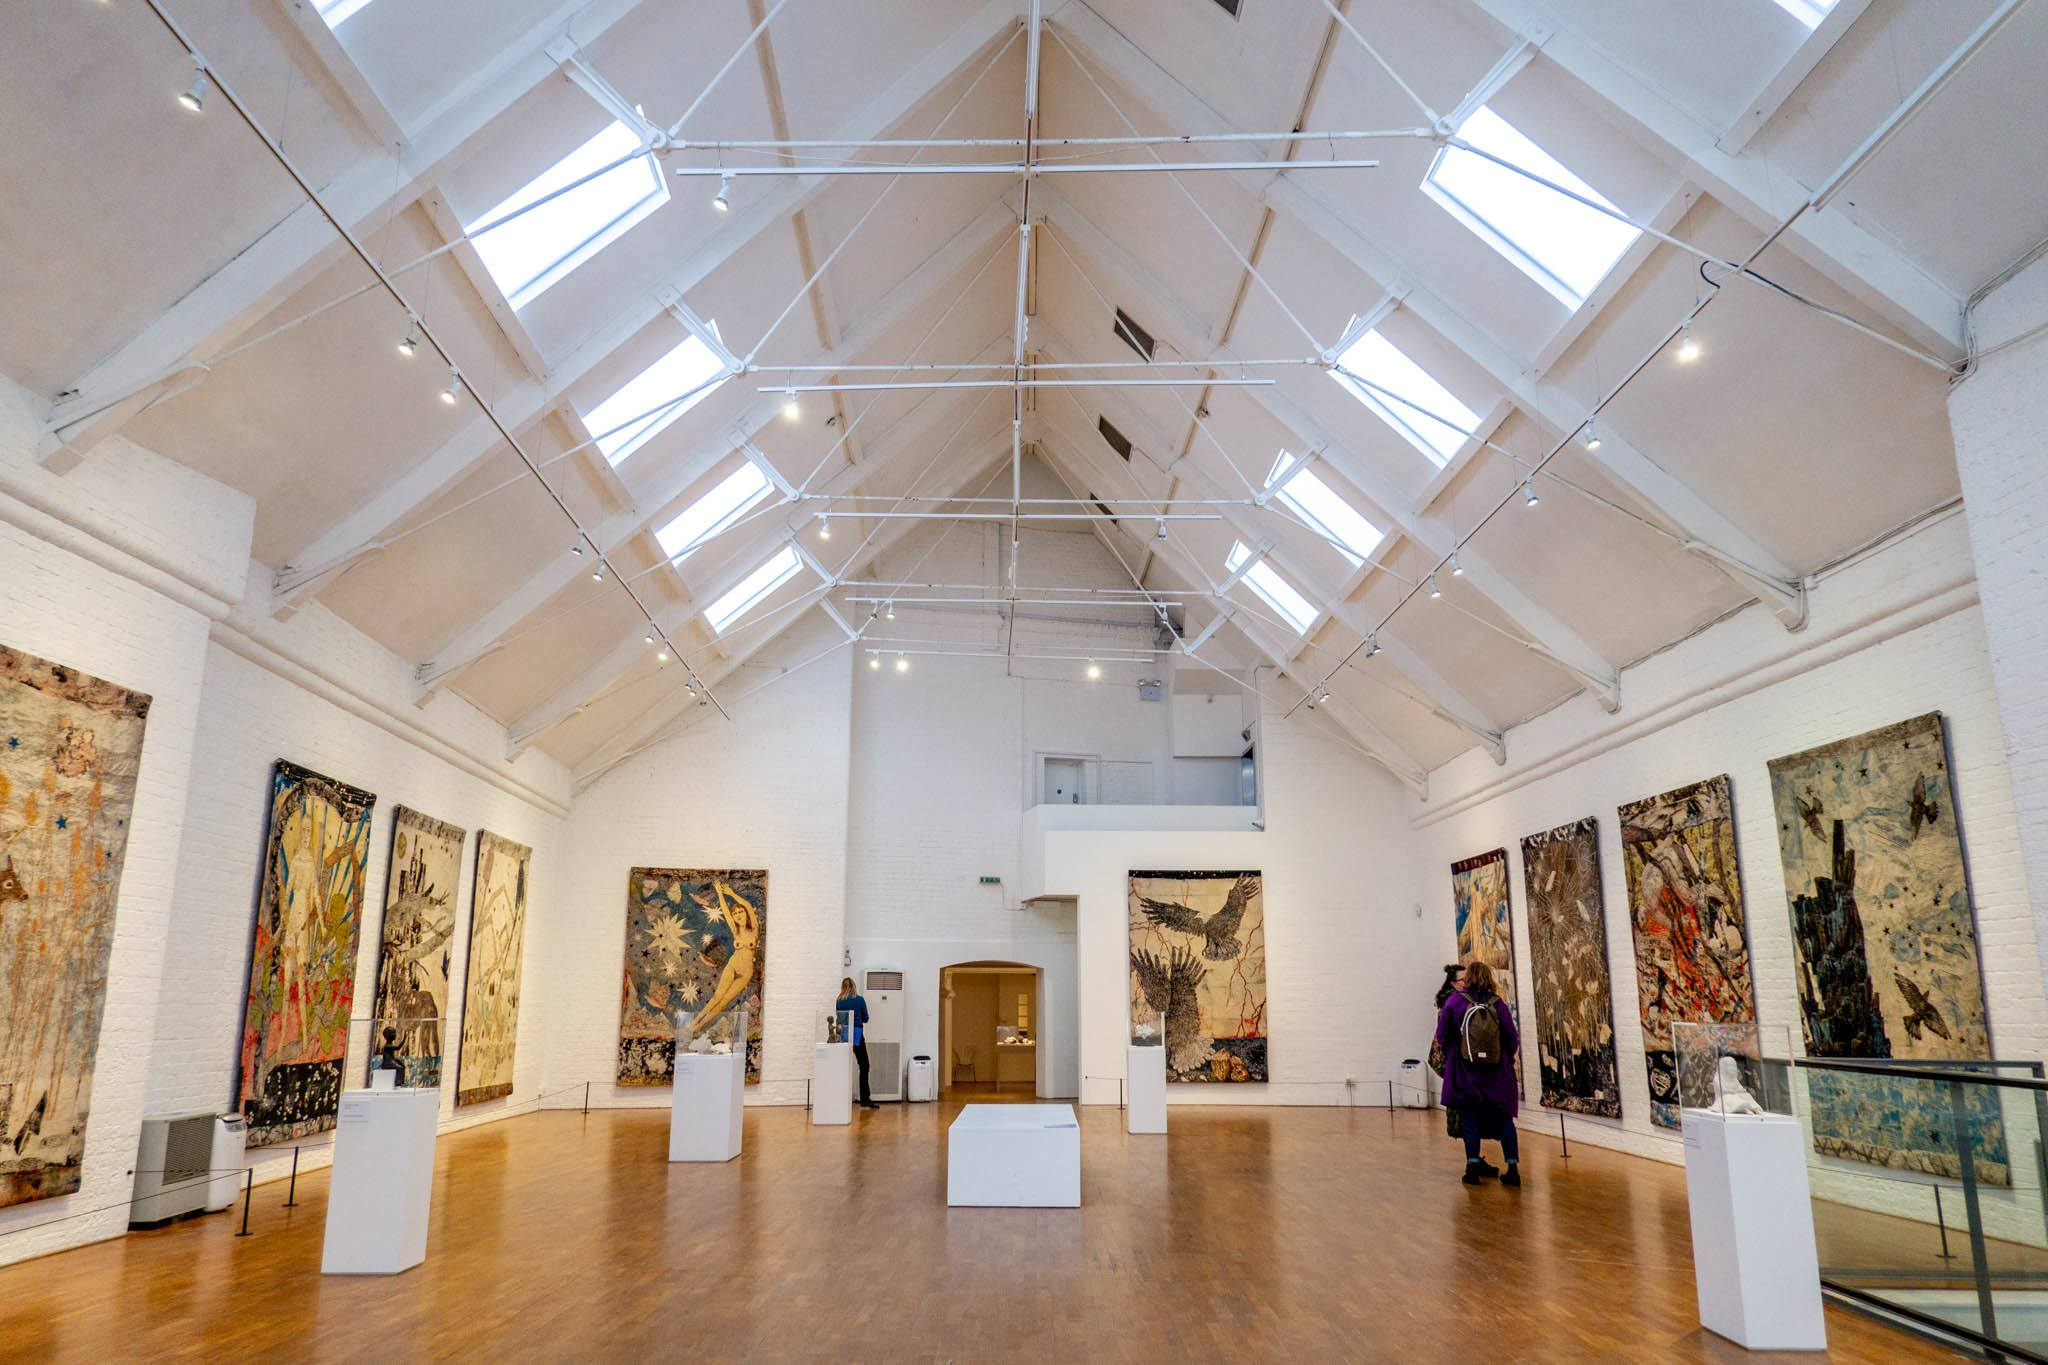 Large art gallery room with paintings on the walls